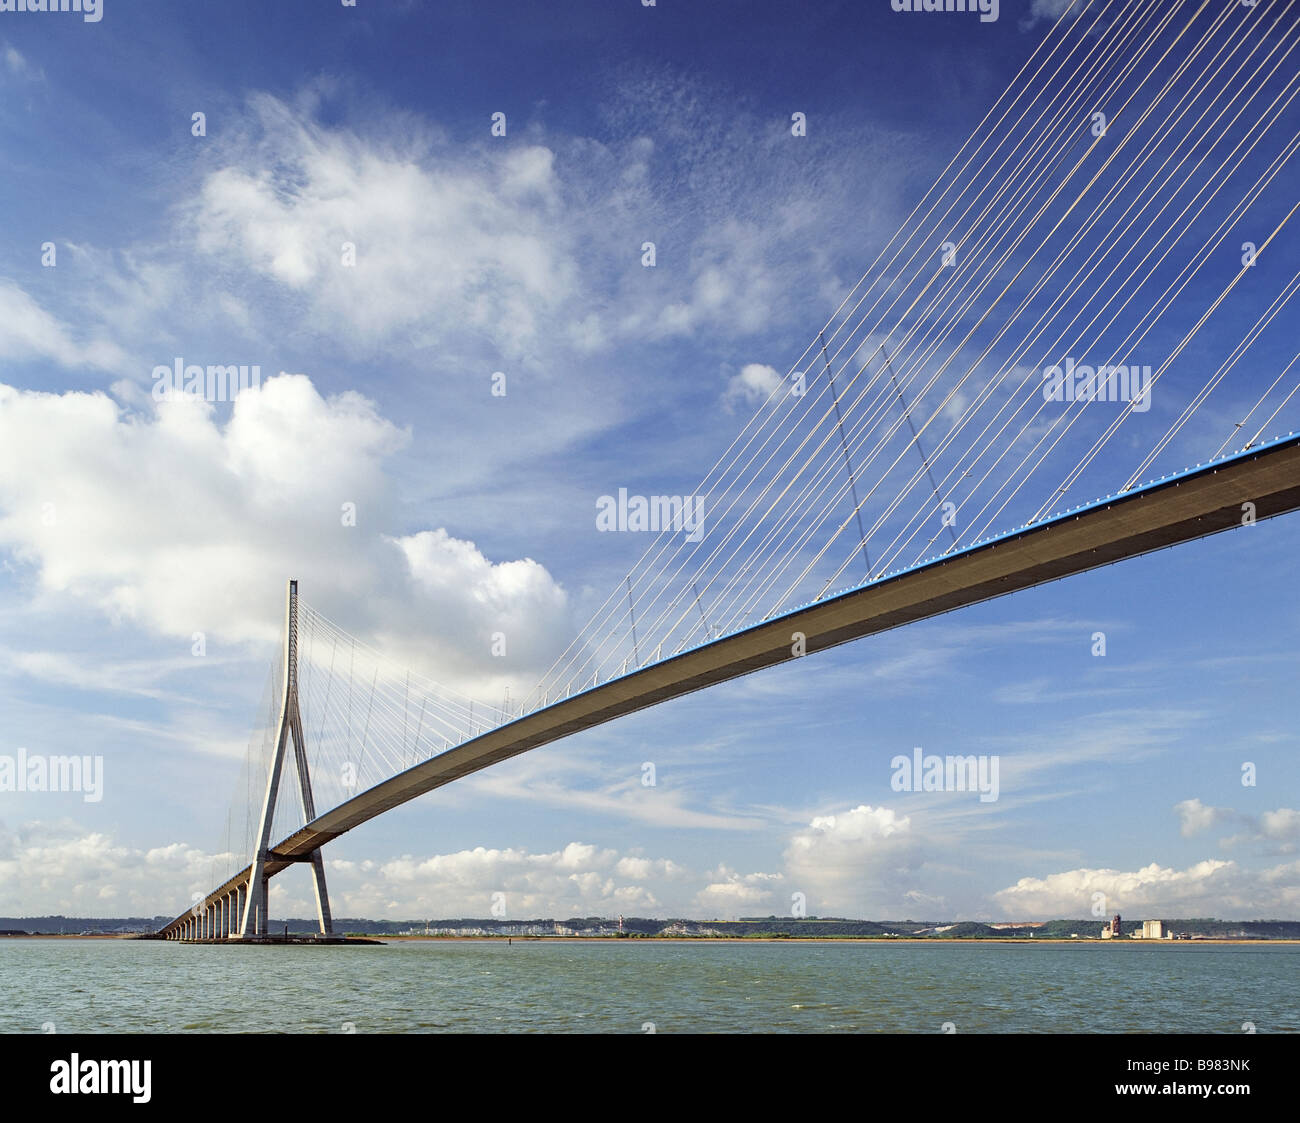 FRANCE NORMANDY BRIDGE PONT NORMANDIE RIVER SEINE - Stock Image